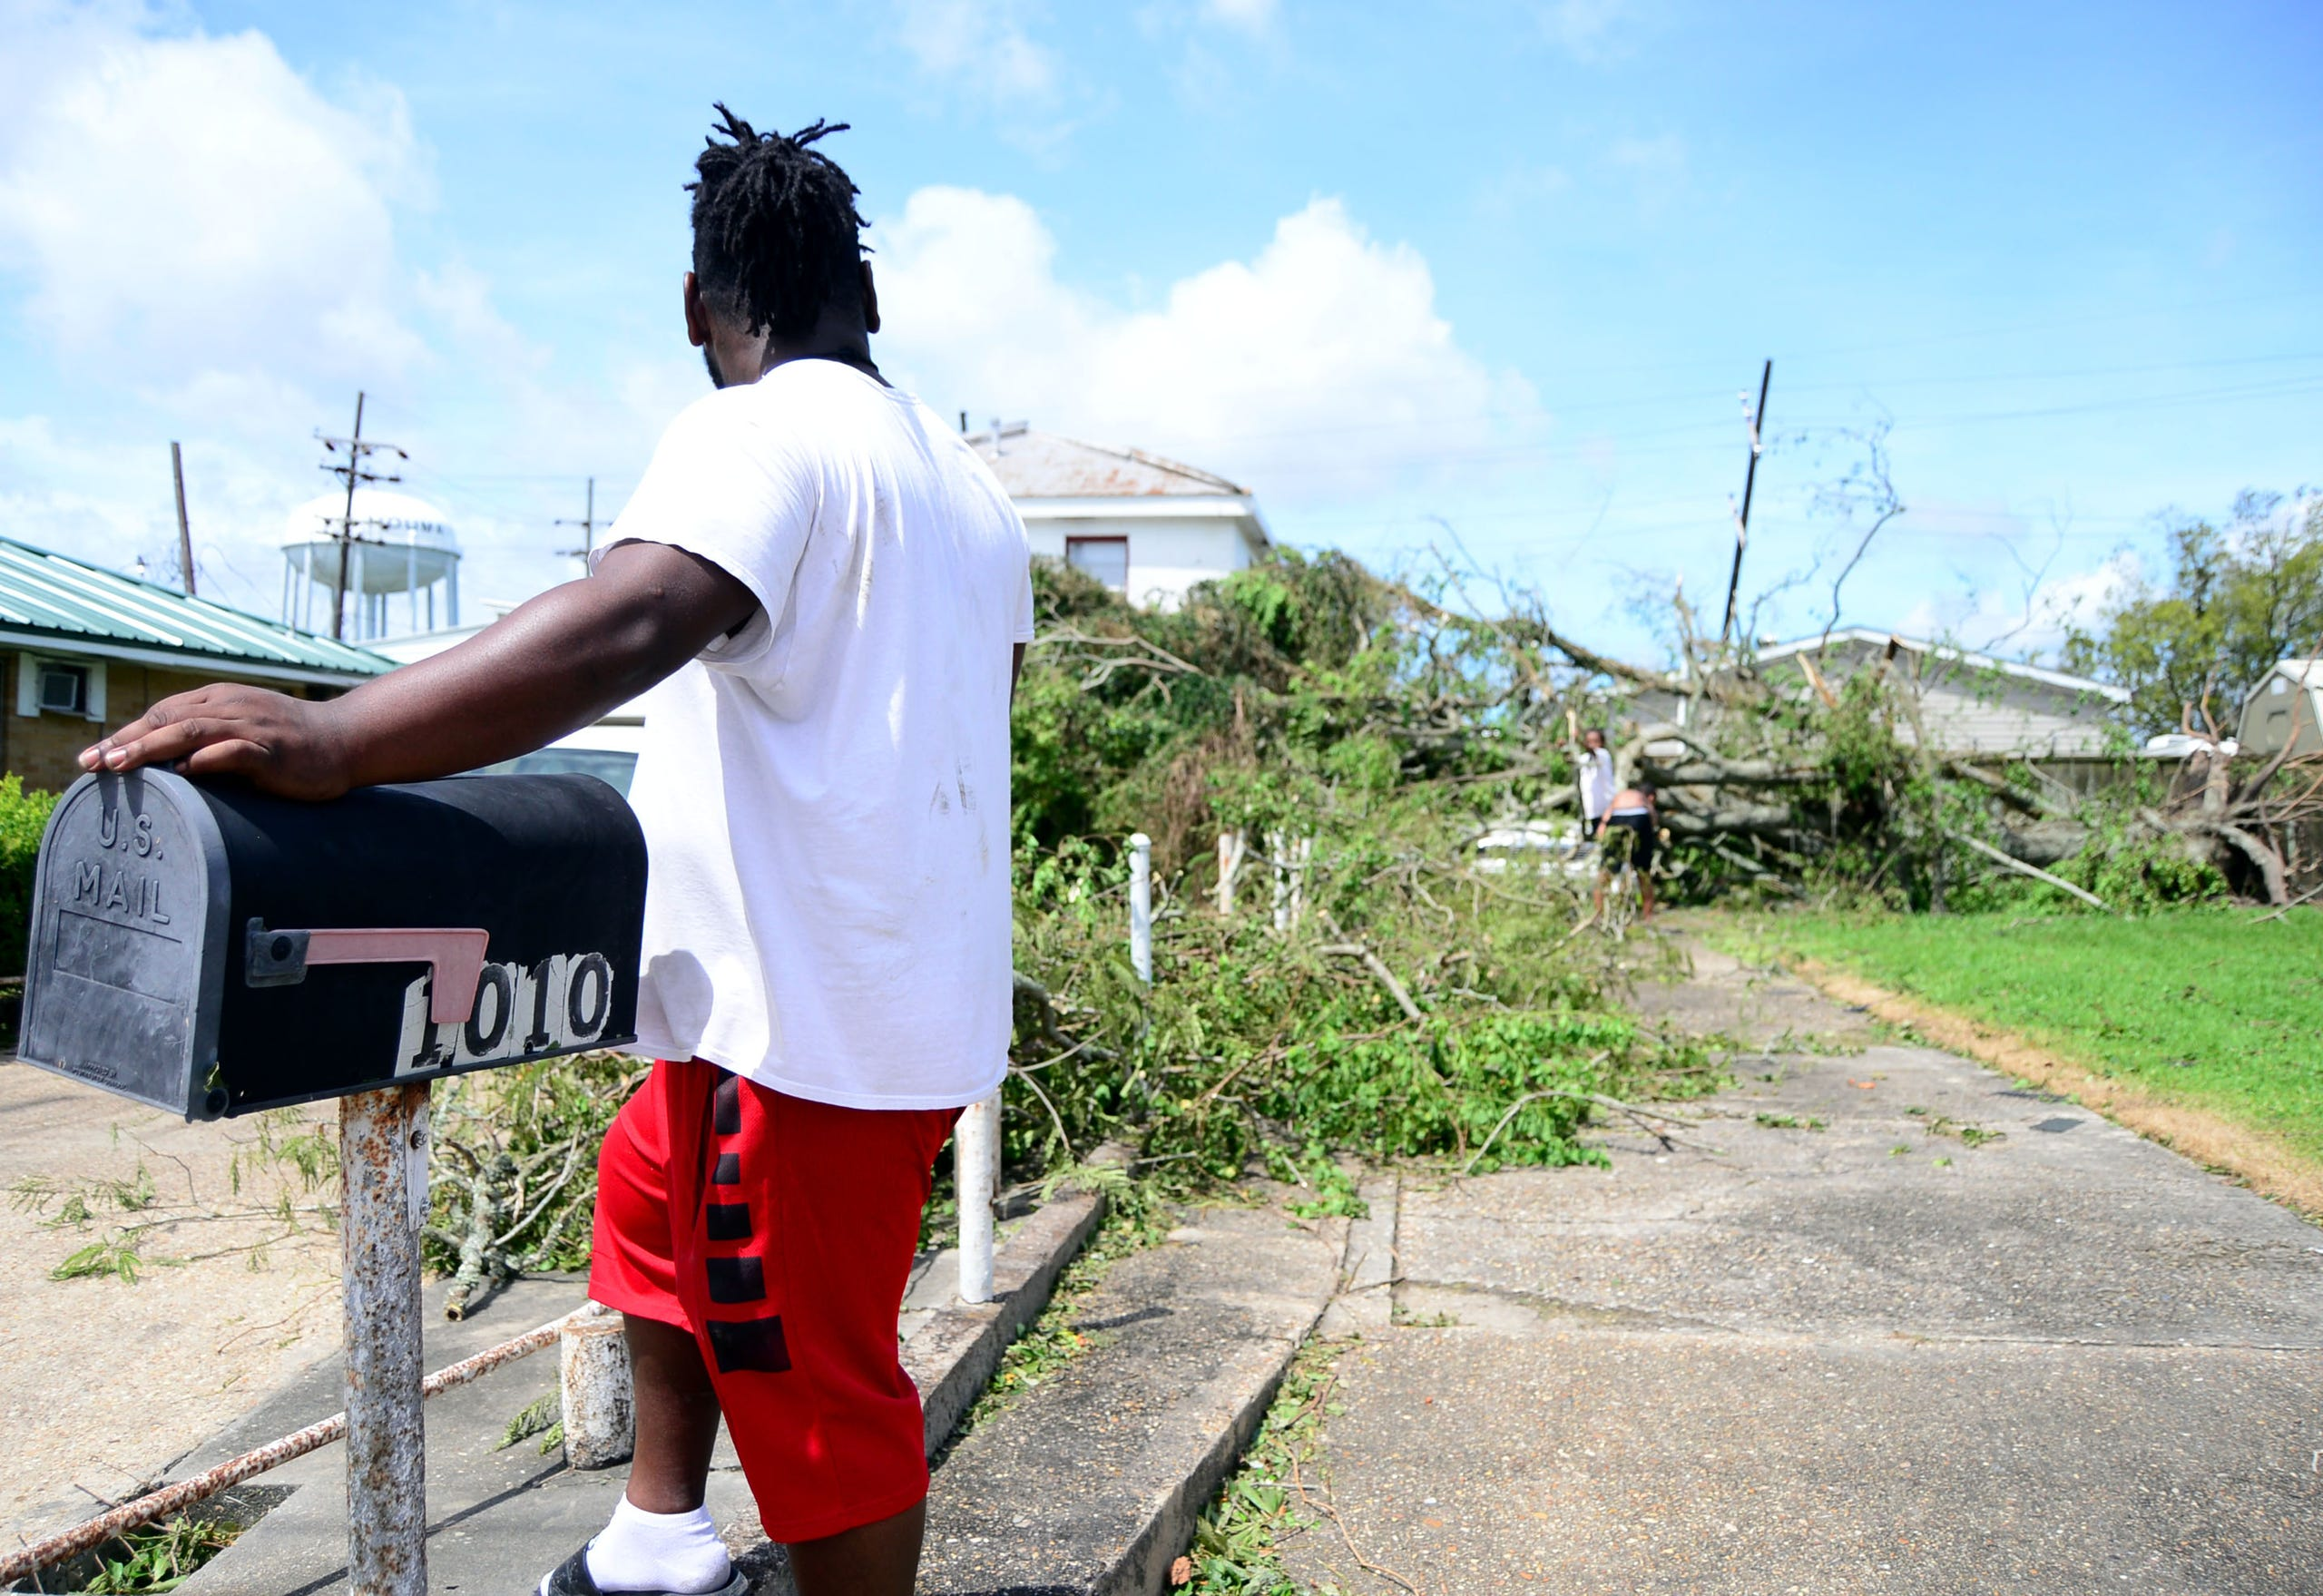 Paten Neville stands next to the mailbox outside his mother's home in Houma, La., on Monday, Aug. 30, 2021. His car, barely seen in the background, is buried underneath a tree that fell from Hurricane Ida's winds on Sunday.